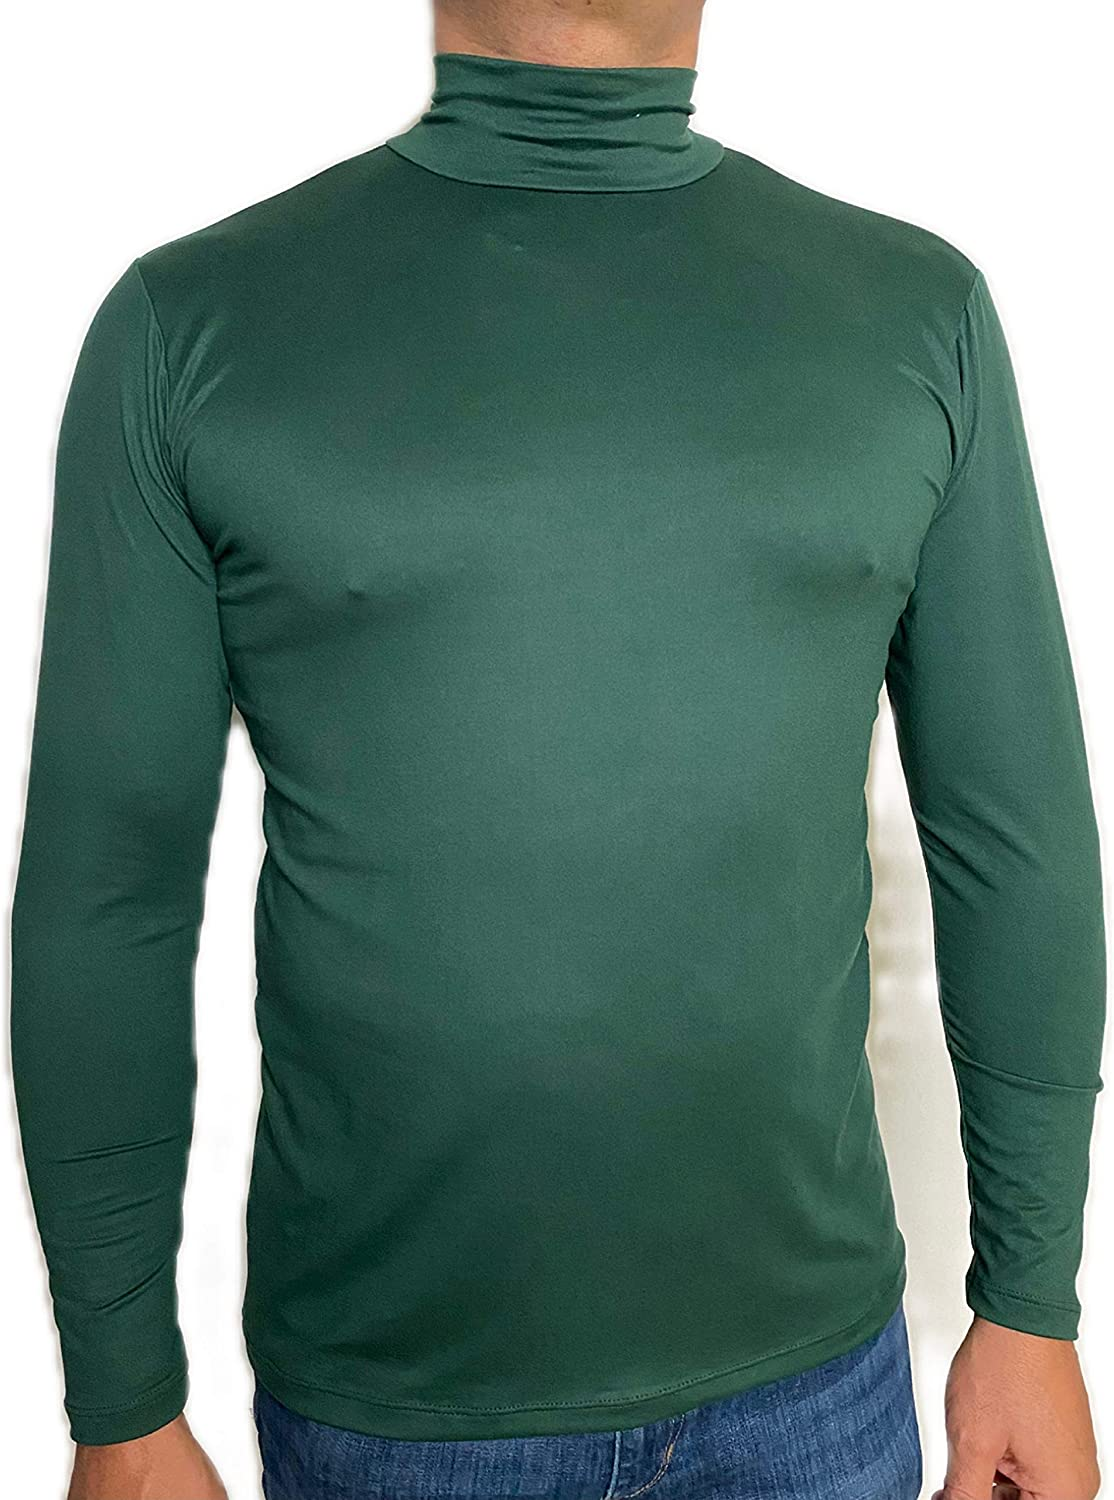 MJoffee, MADE IN USA, Turtleneck Long Sleeve Thermal Sweater, Mock Turtleneck Layer Shirt for Men, in Multiple Colors